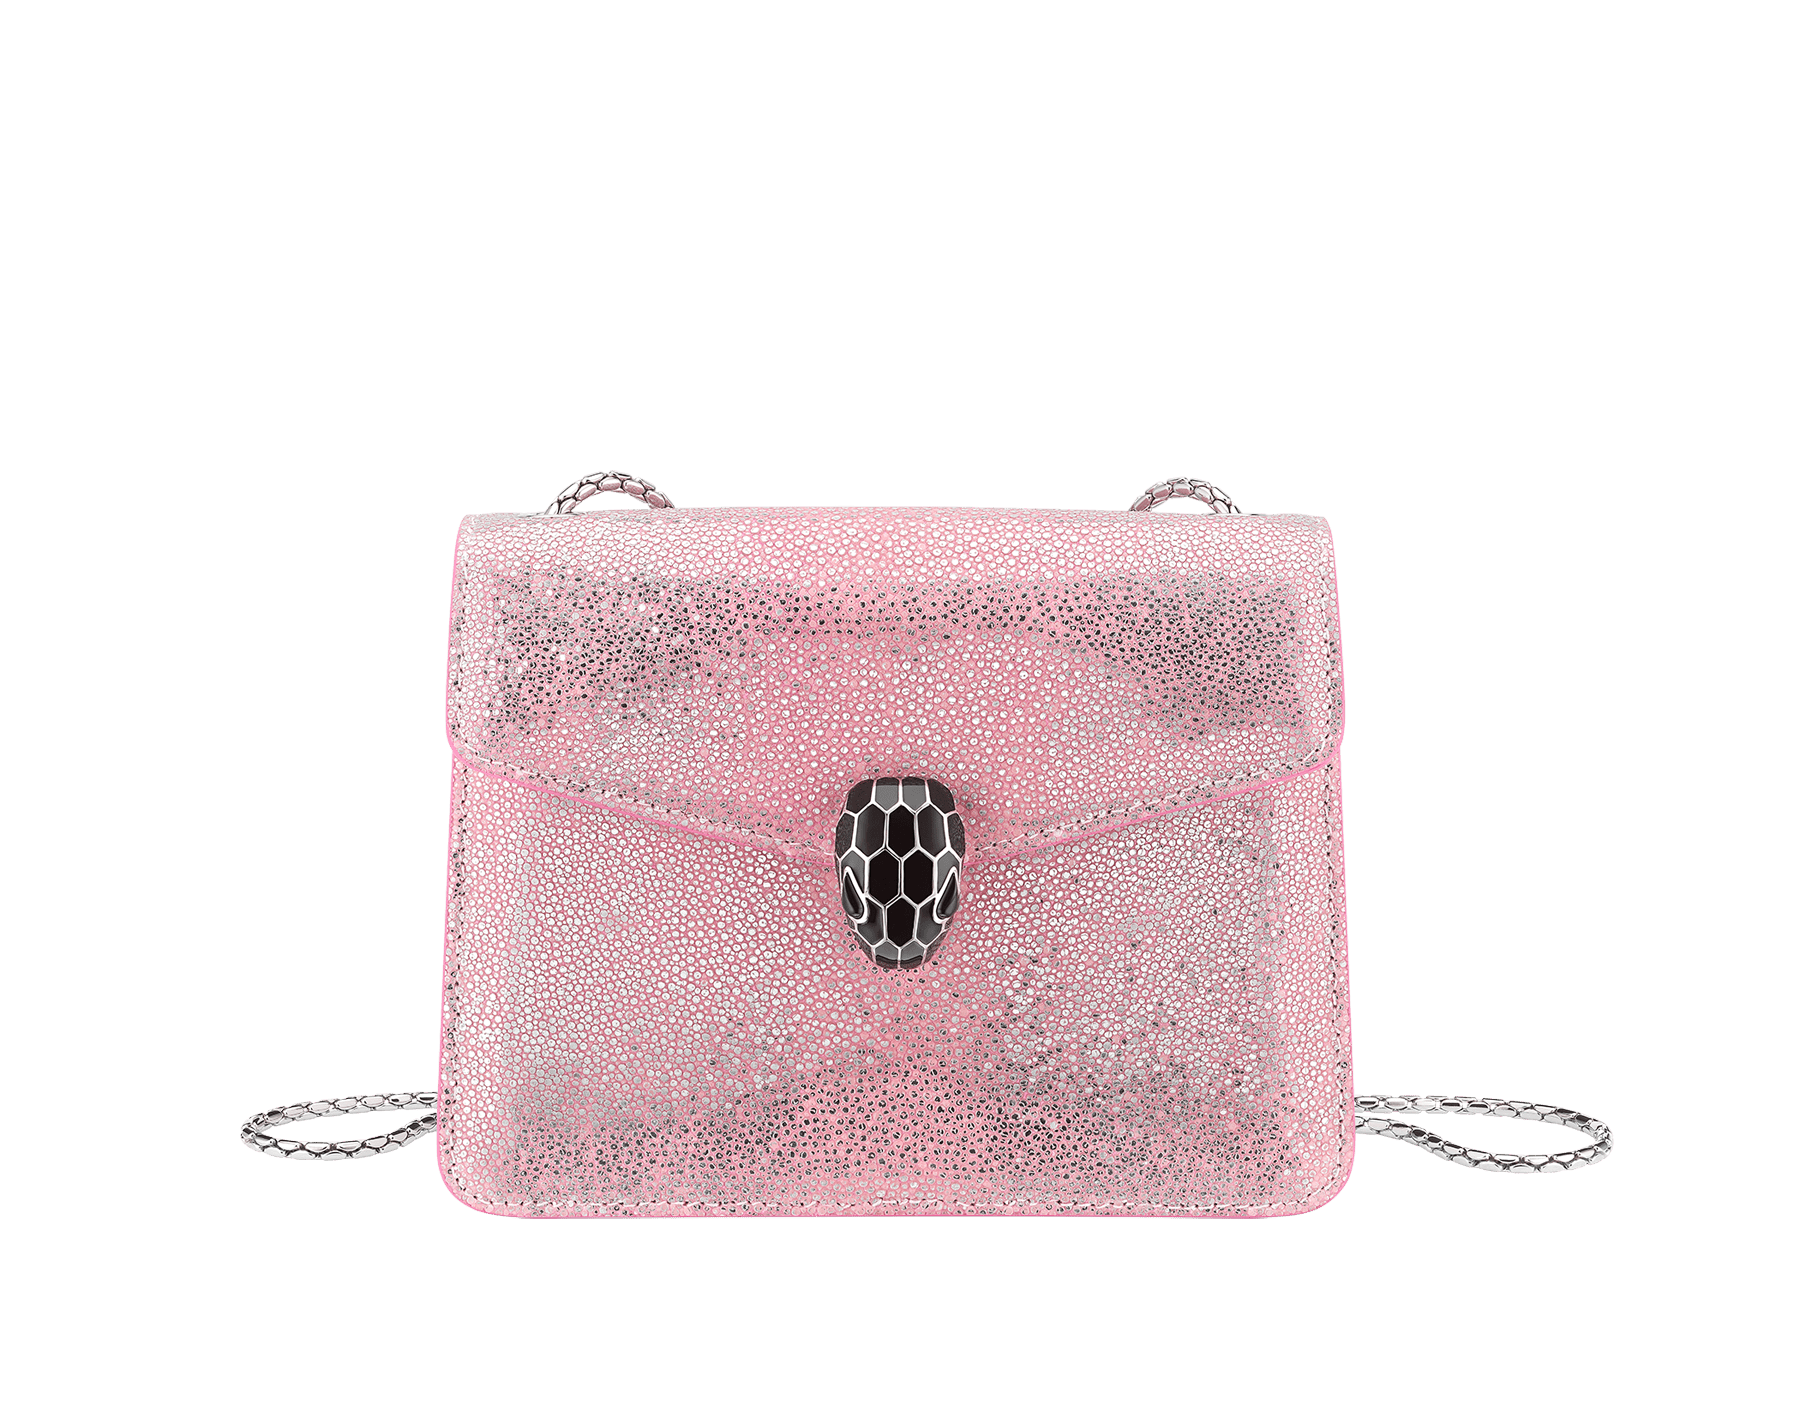 """Serpenti Forever"" crossbody bag in rosa di francia crystal galuchat skin. Iconic snake head closure in palladium plated brass enriched with black enamel and black onyx eyes. 289408 image 1"